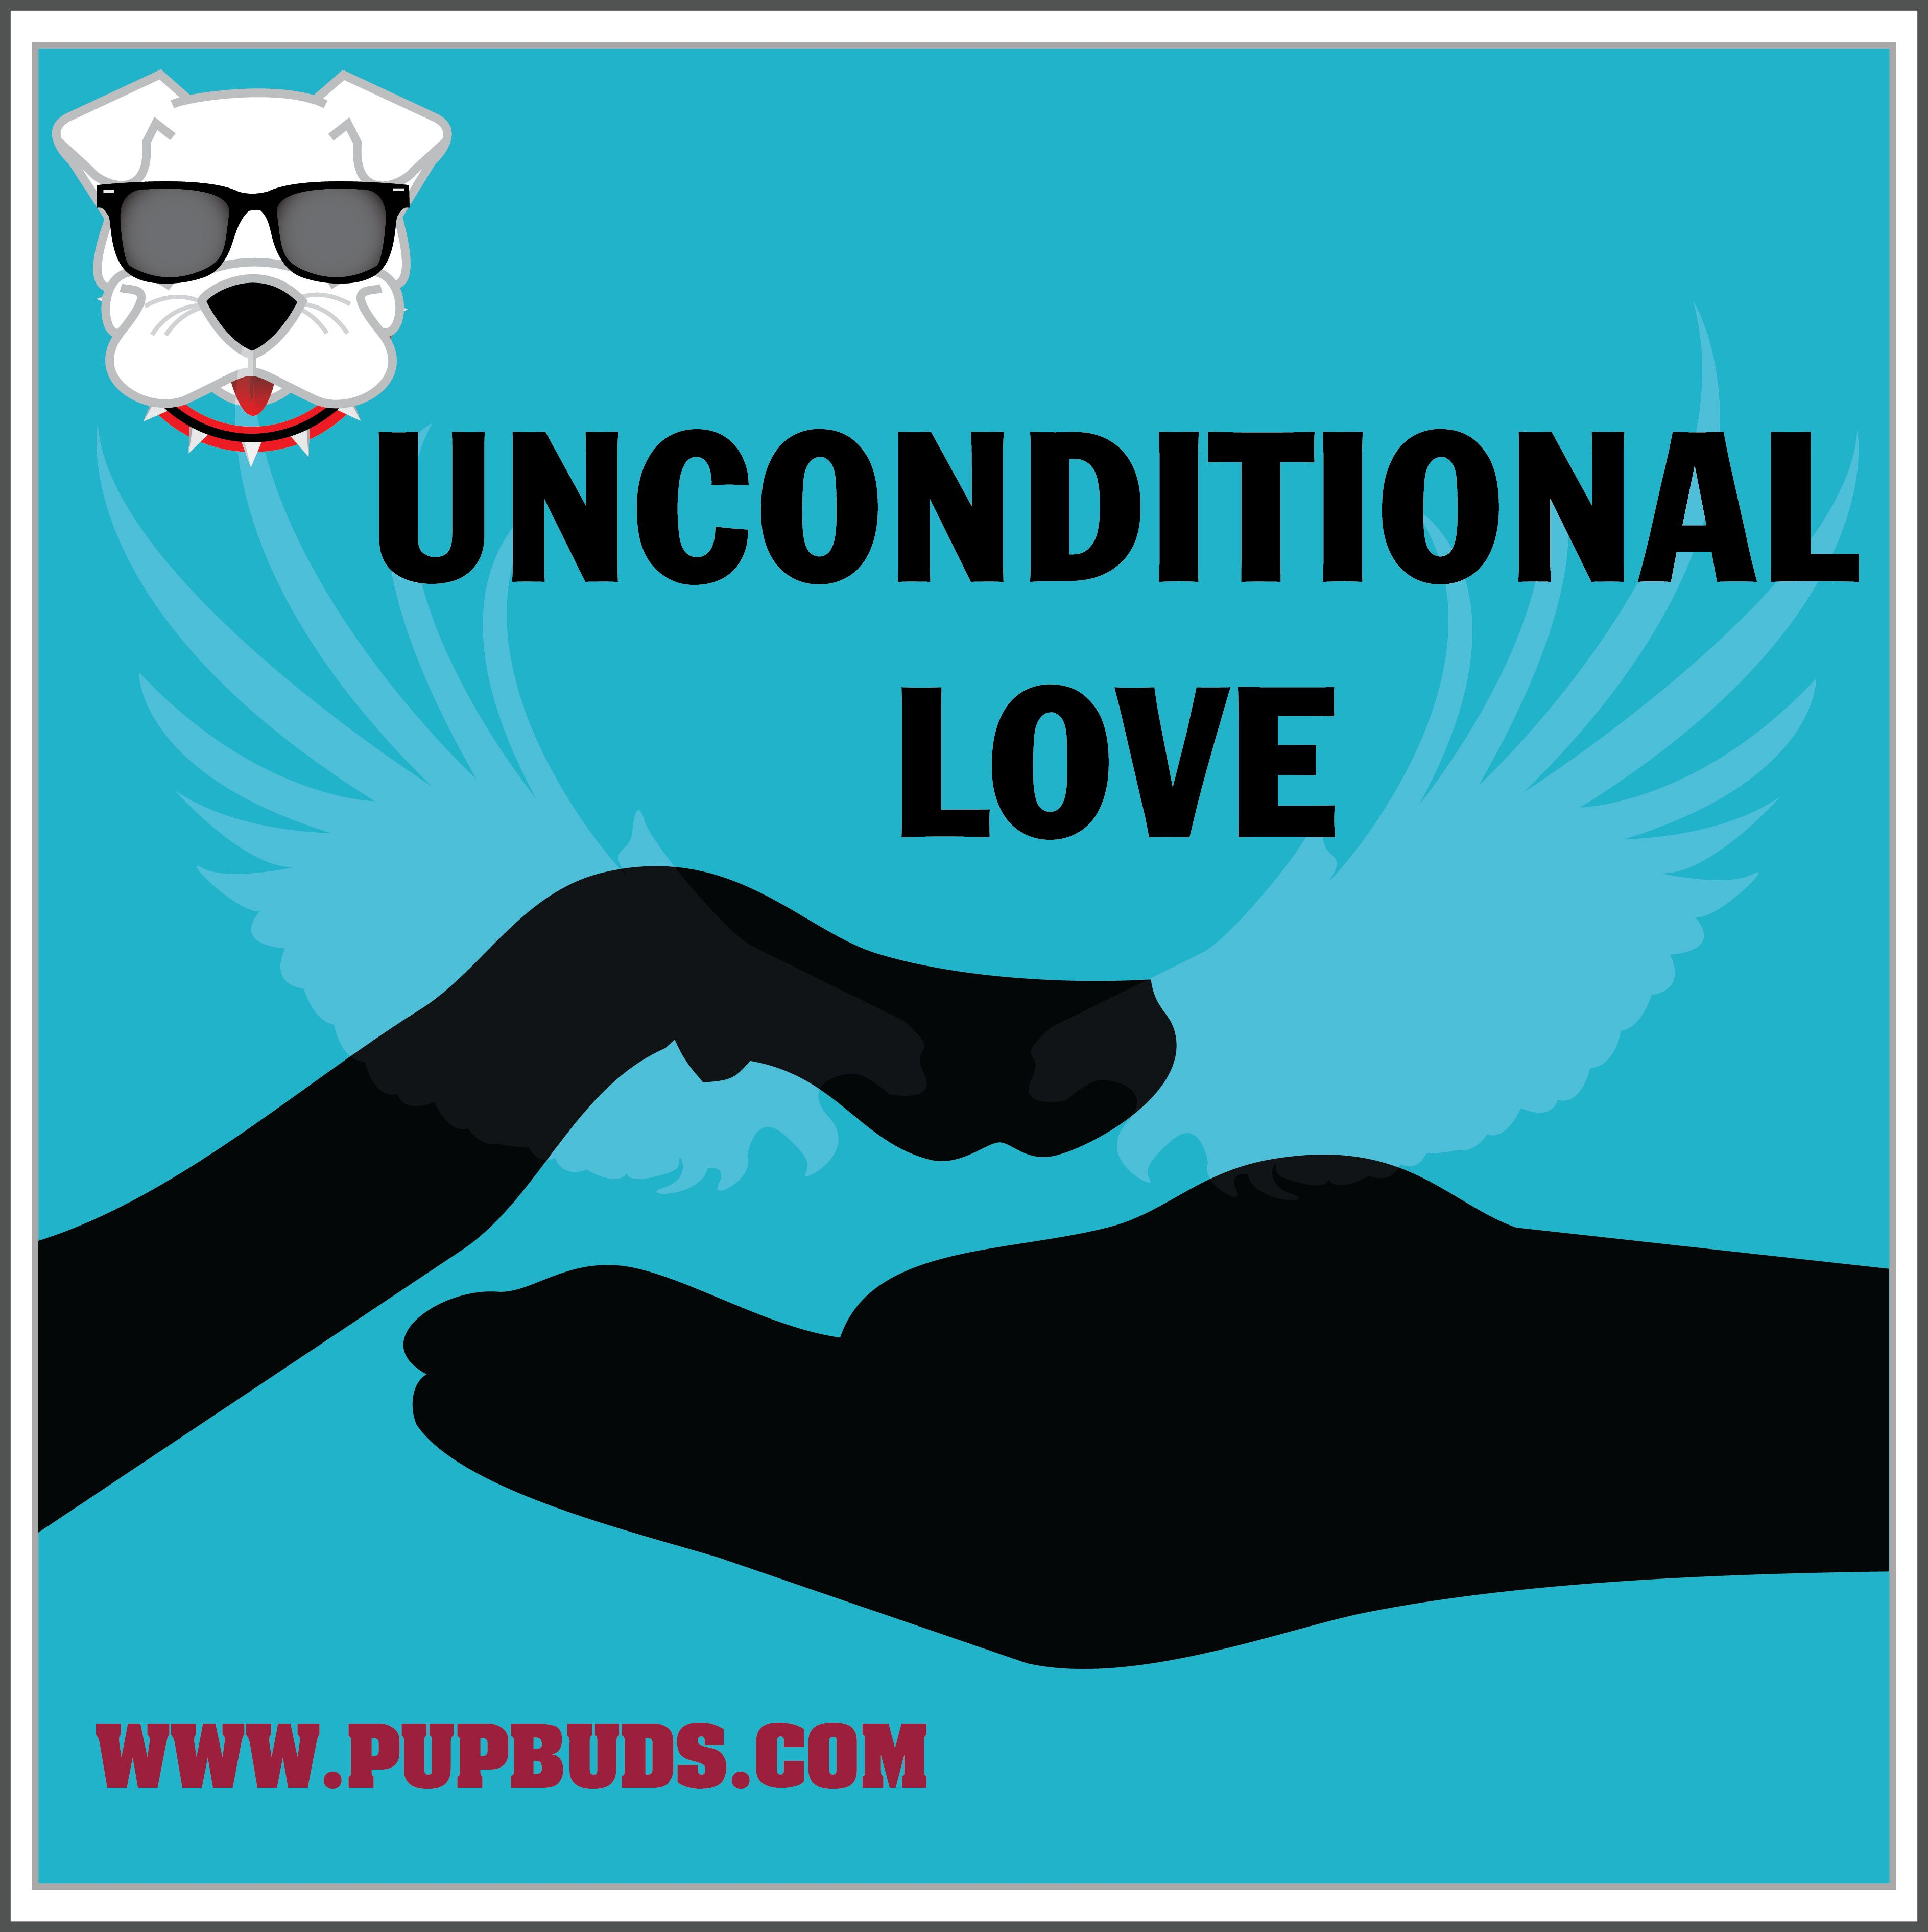 UNCONDITIONAL LOVE    Re-pin if you LIKE this